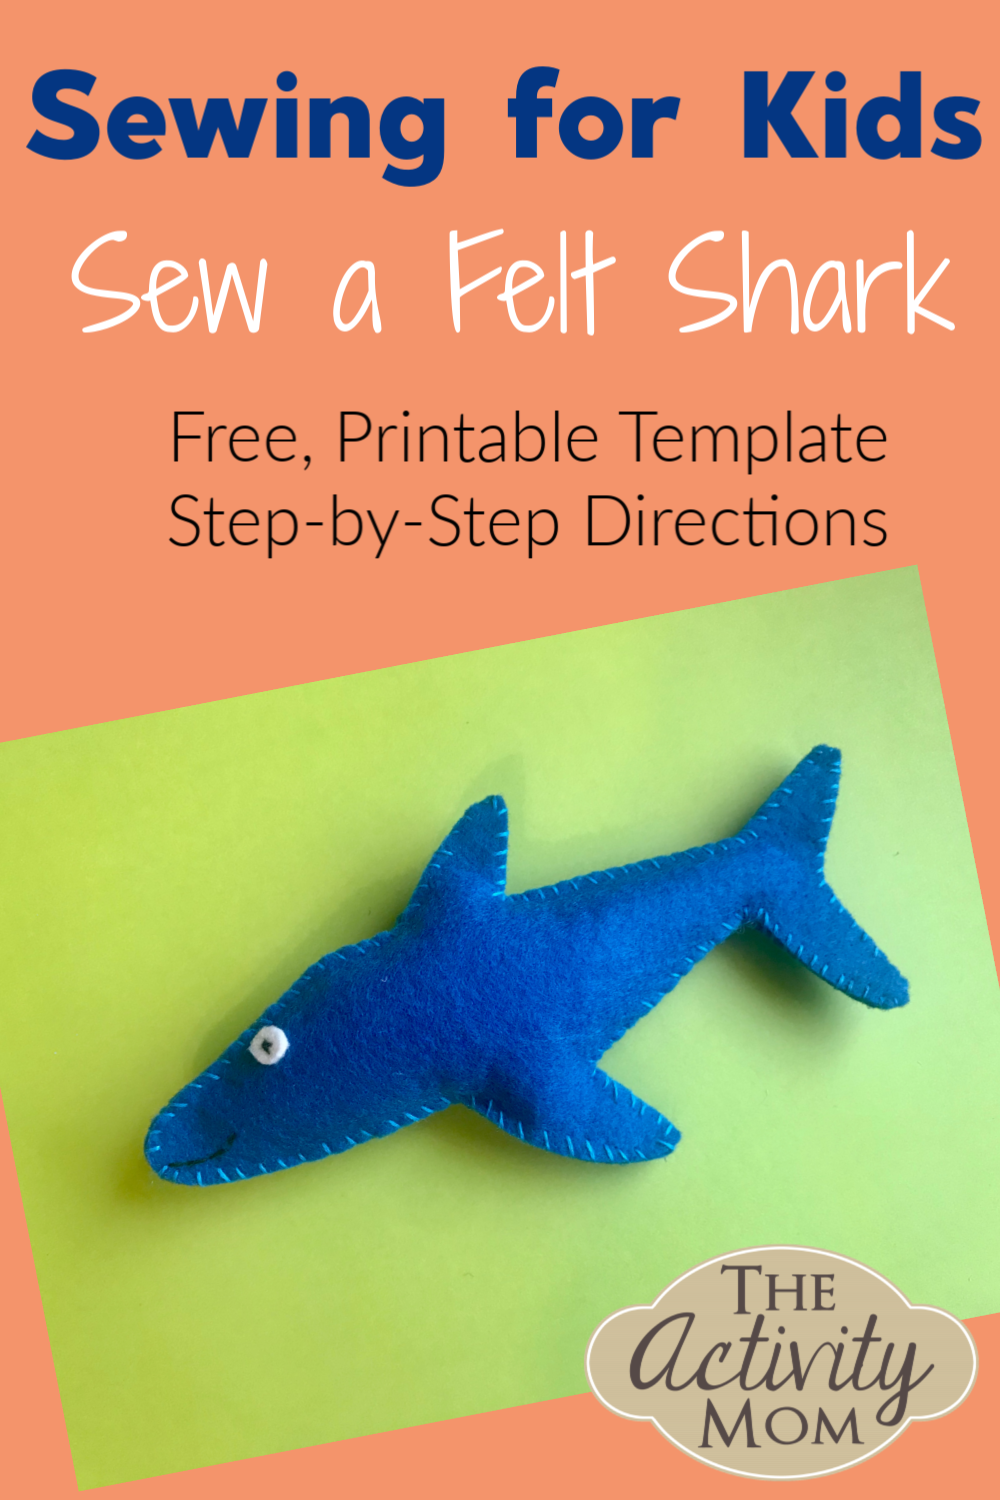 Sew a Felt Shark for Kids